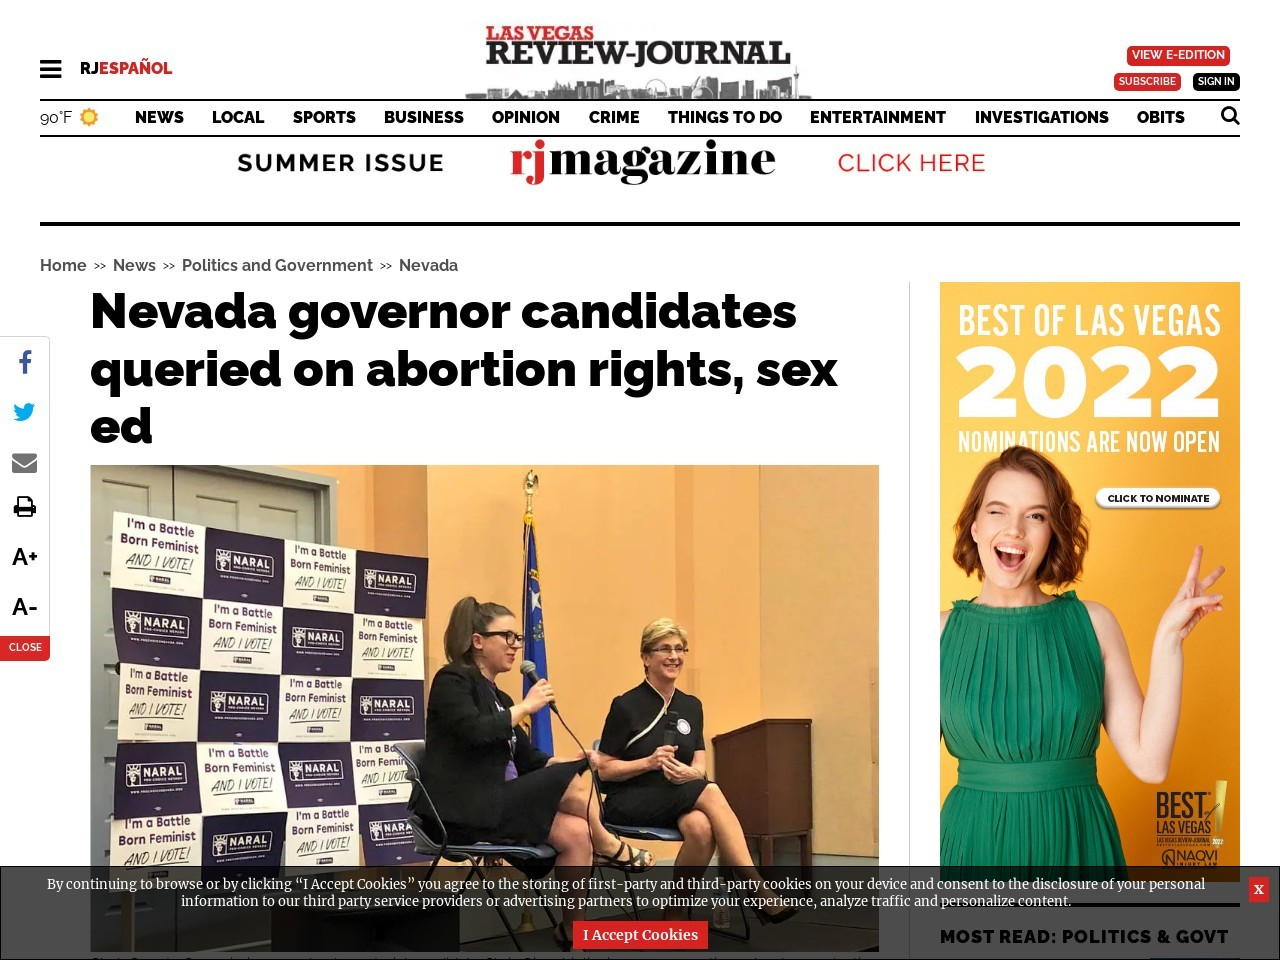 Nevada governor candidates queried on abortion rights, sex ed